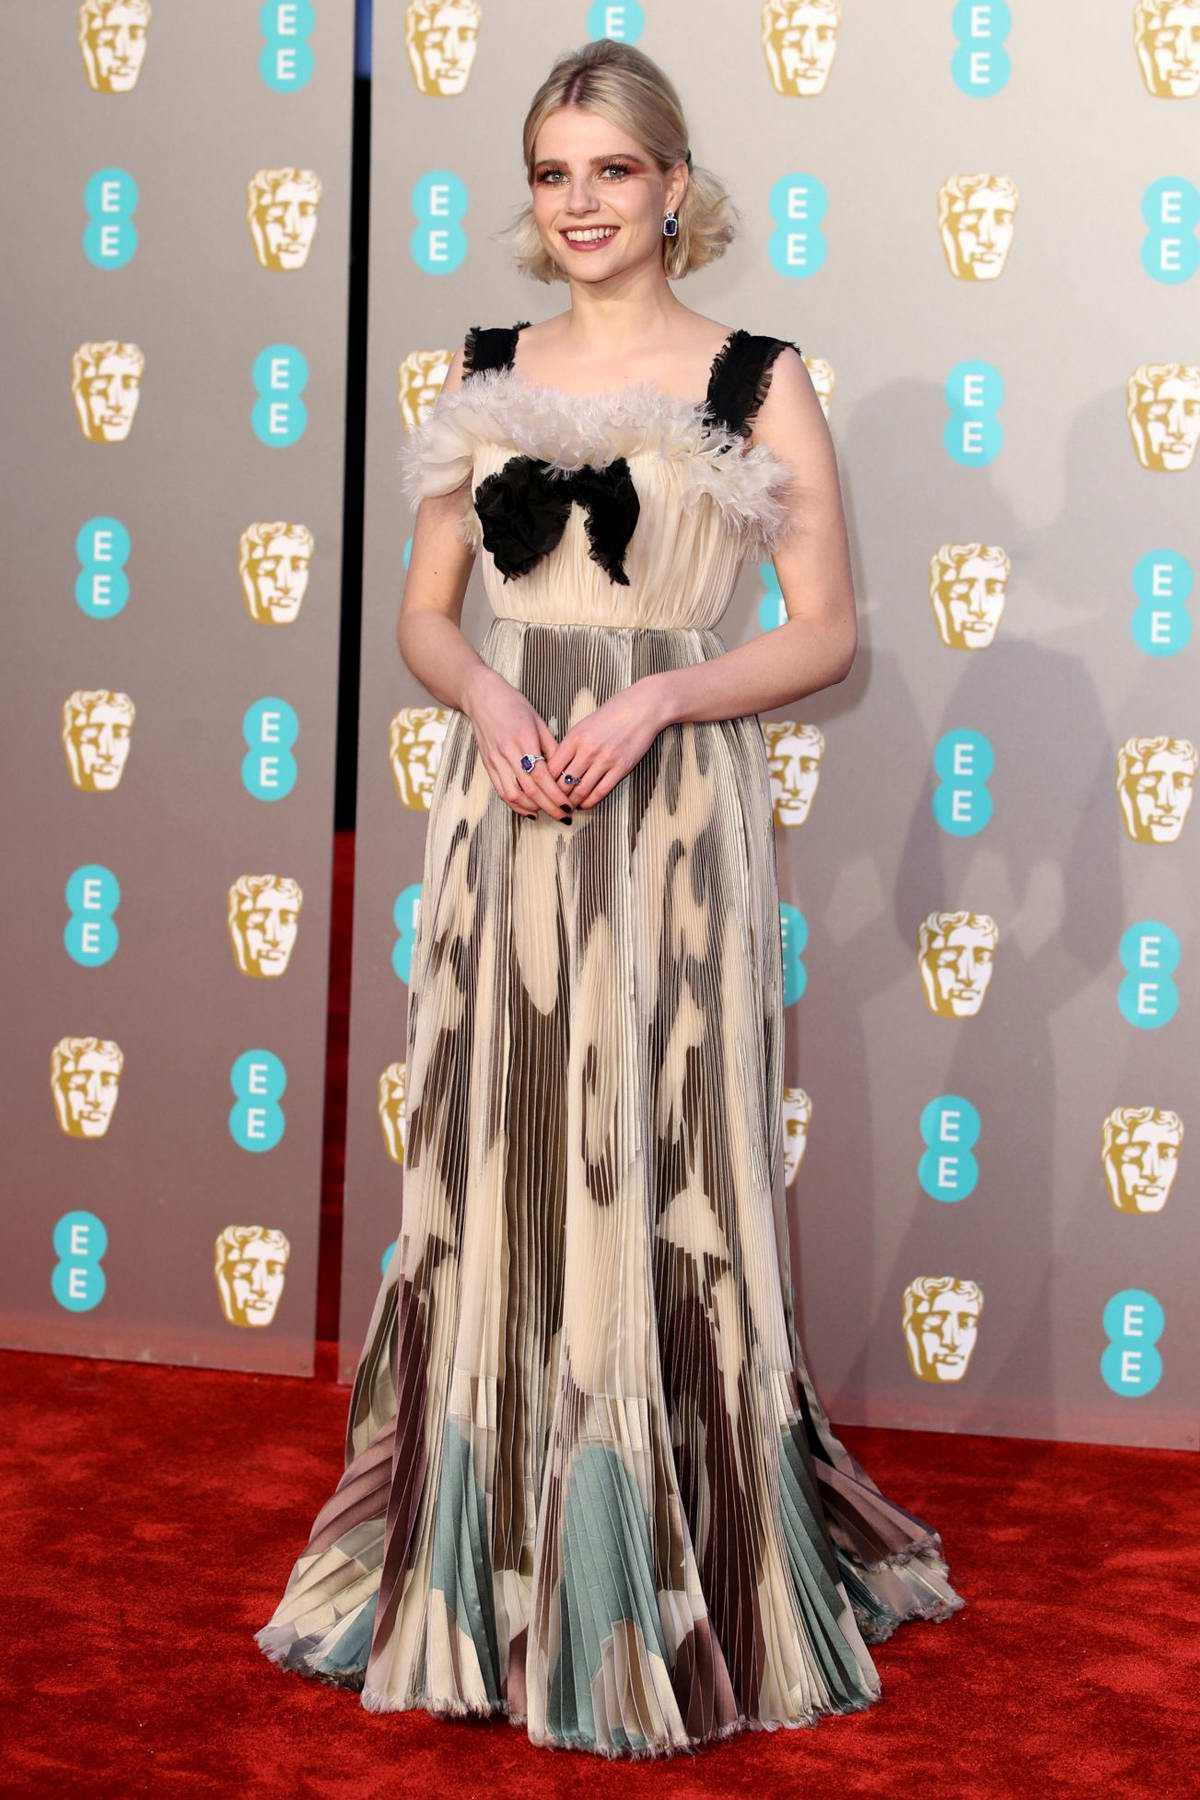 Lucy Boynton attends the 72nd EE British Academy Film Awards (BAFTA 2019) at Royal Albert Hall in London, UK